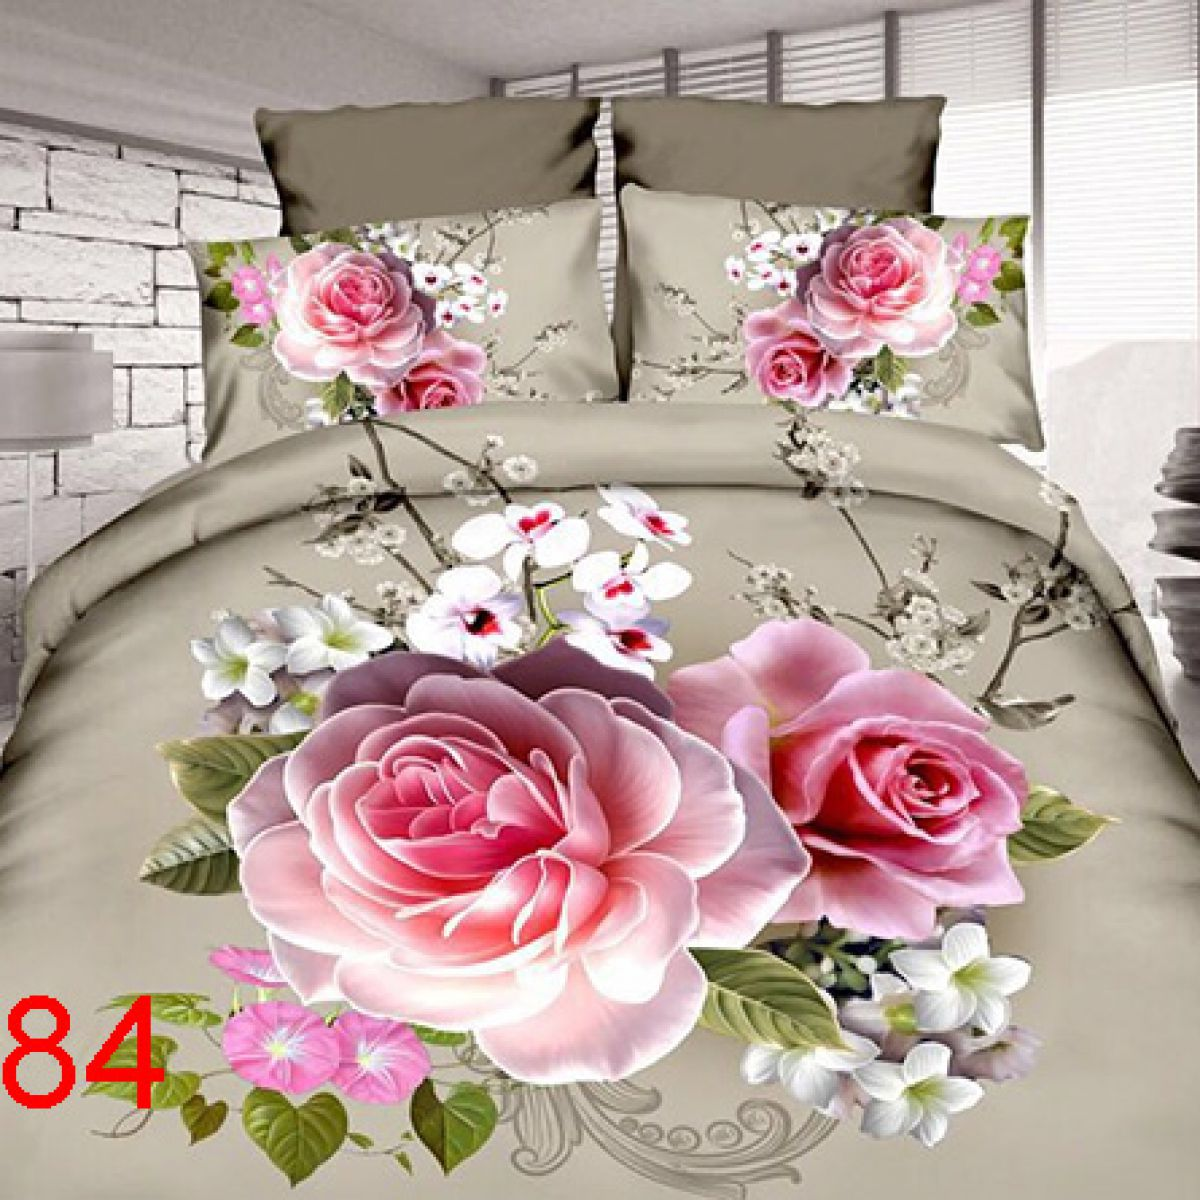 3D Beddings - Antonio - AML-84 - 160x200 cm - 4 pcs